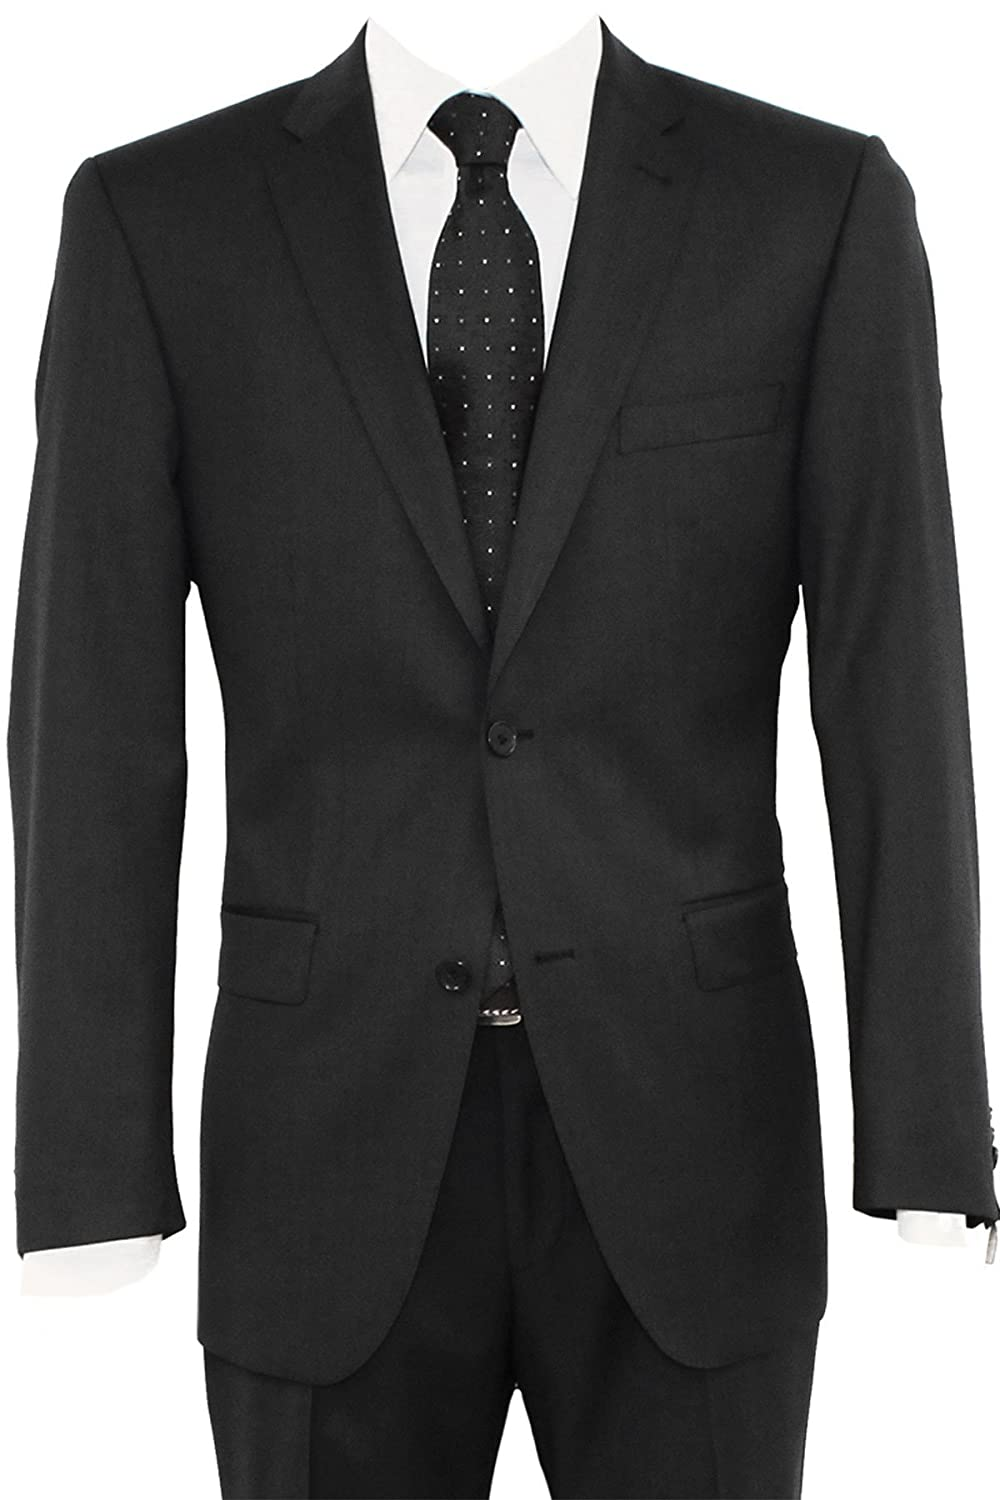 04f68fdf78 ROY ROBSON Suit